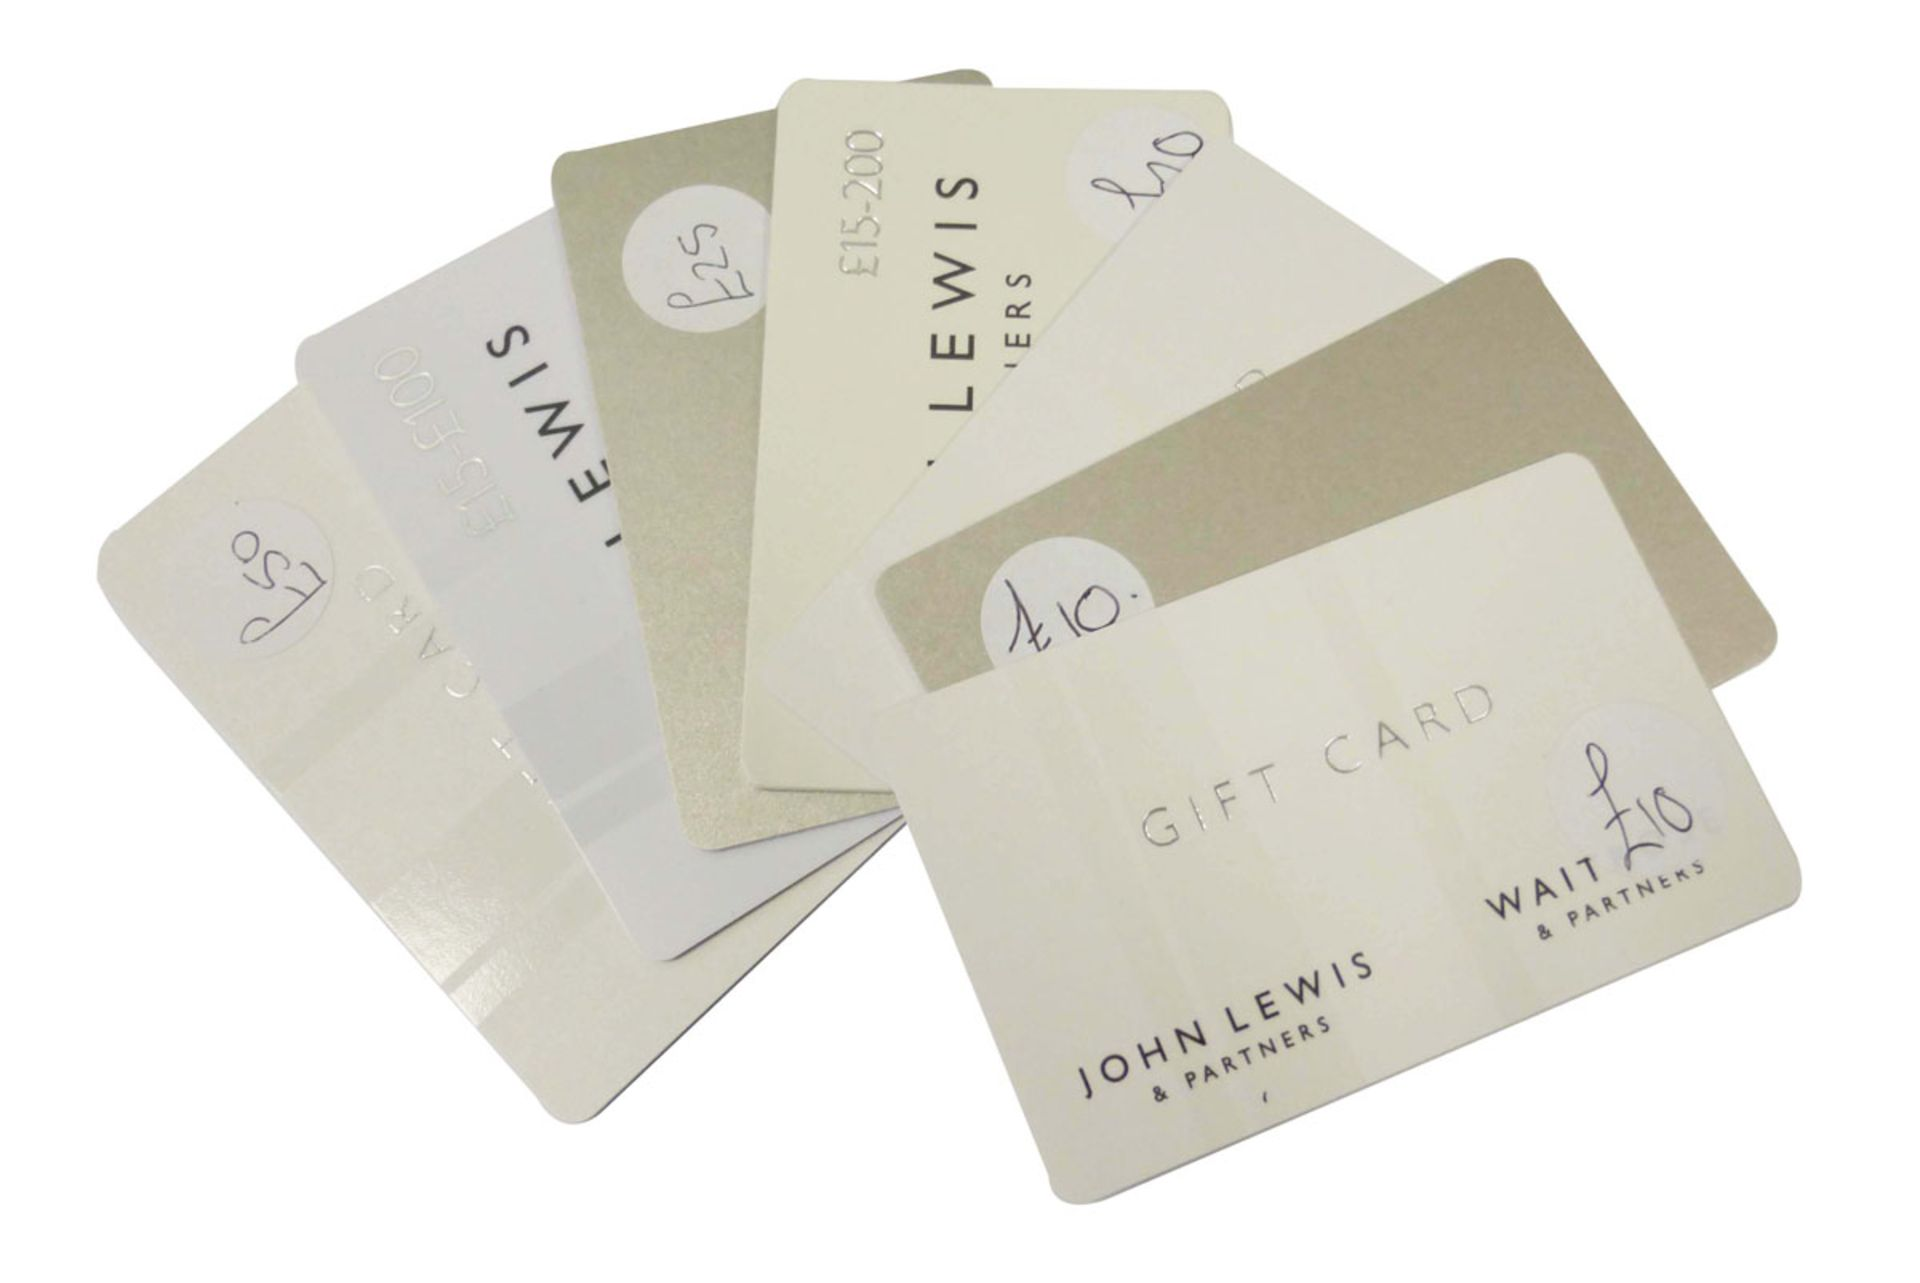 John Lewis (x7) - Total face value £155